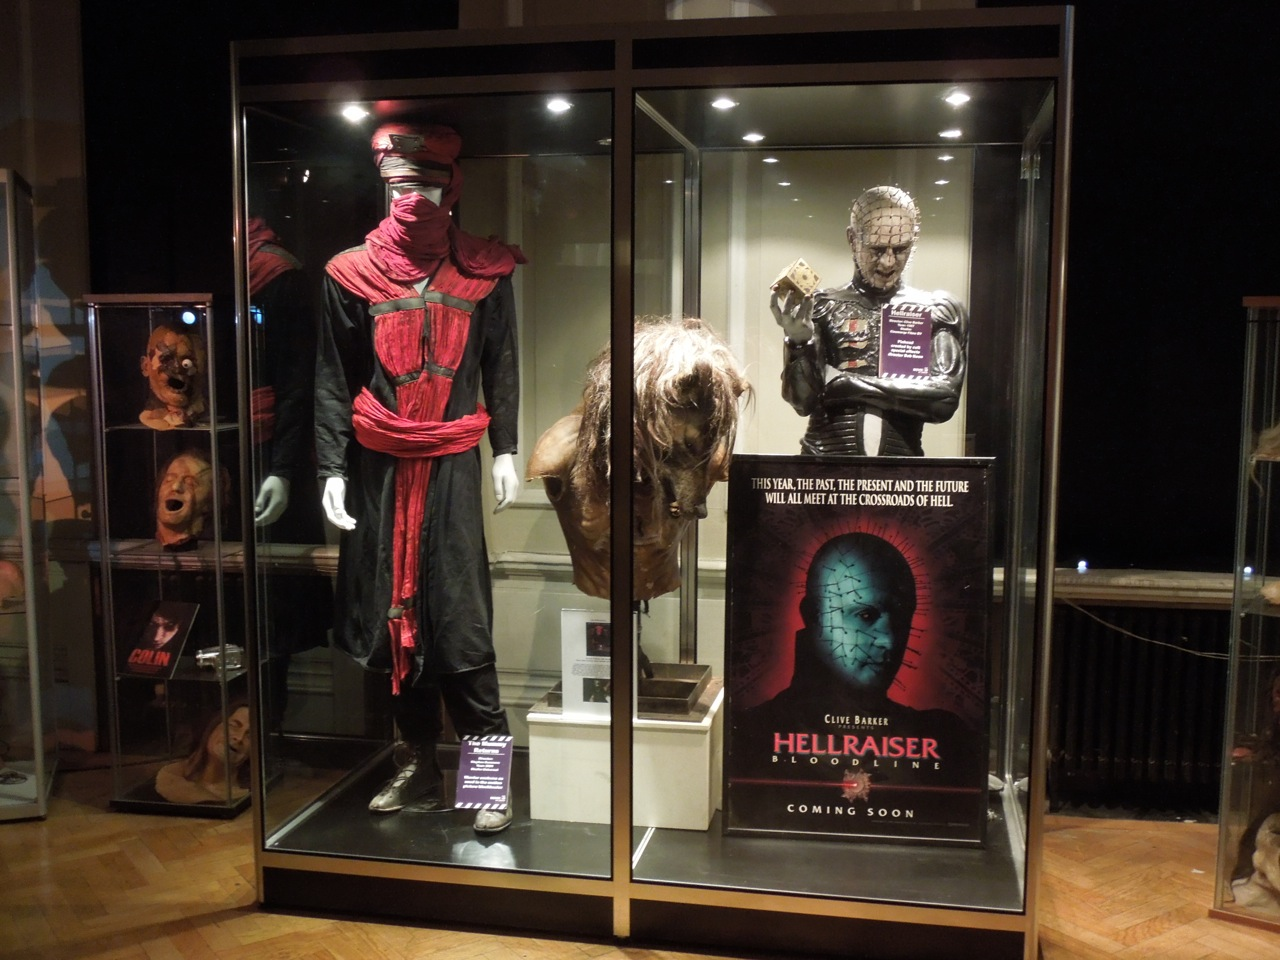 Horror movie memorabilia